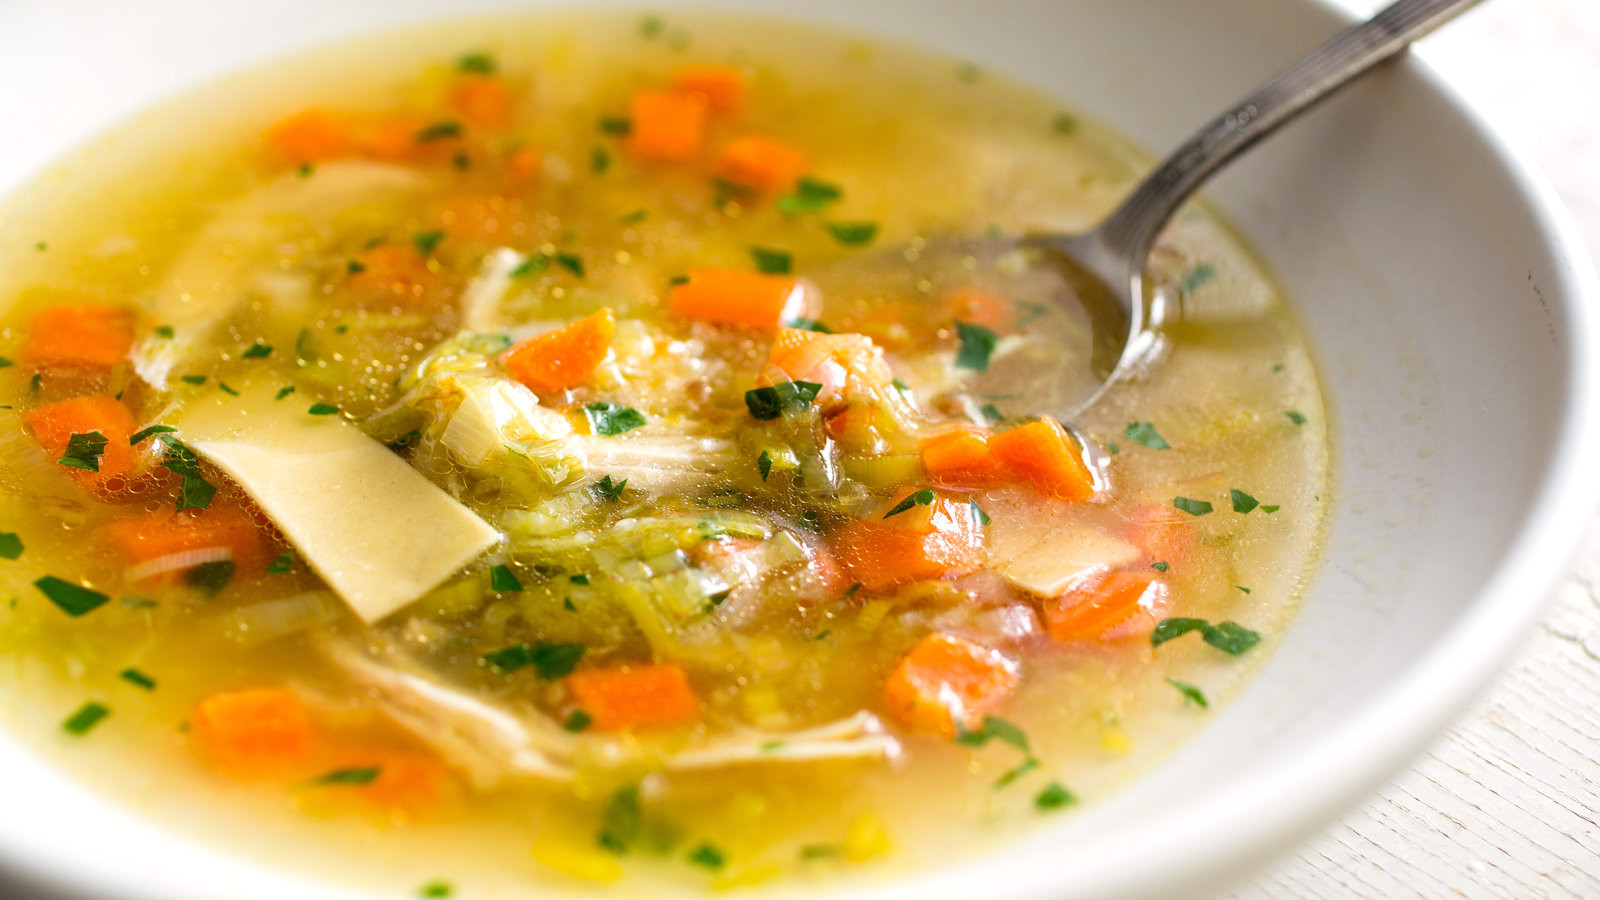 Recipe For Chicken Soup  Chicken Soup From Scratch Recipe NYT Cooking